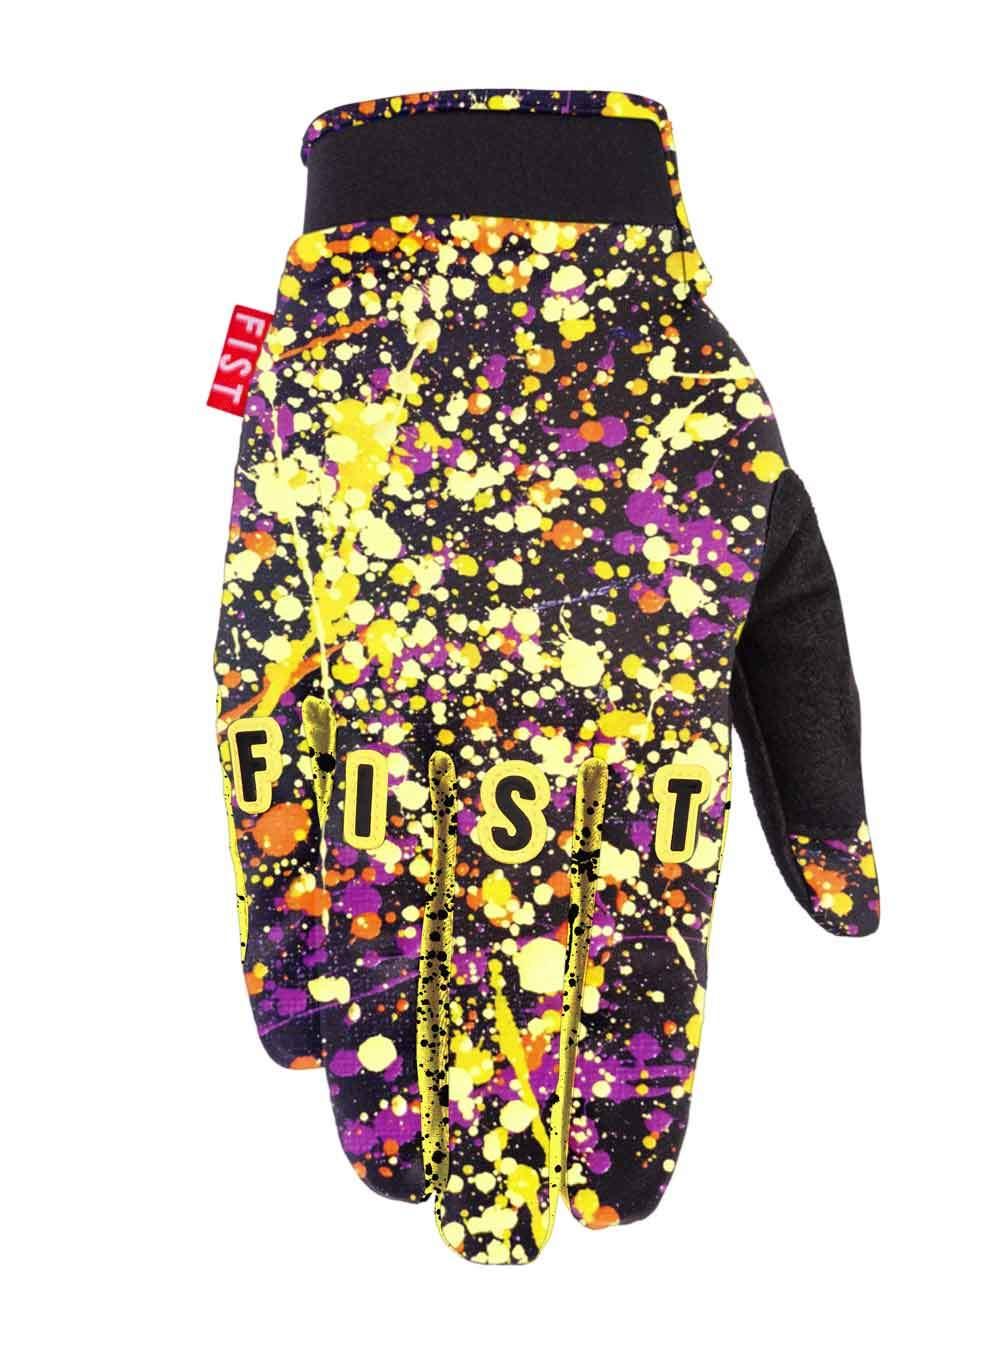 GANTS FIST ALEX HIAM SPLATTER